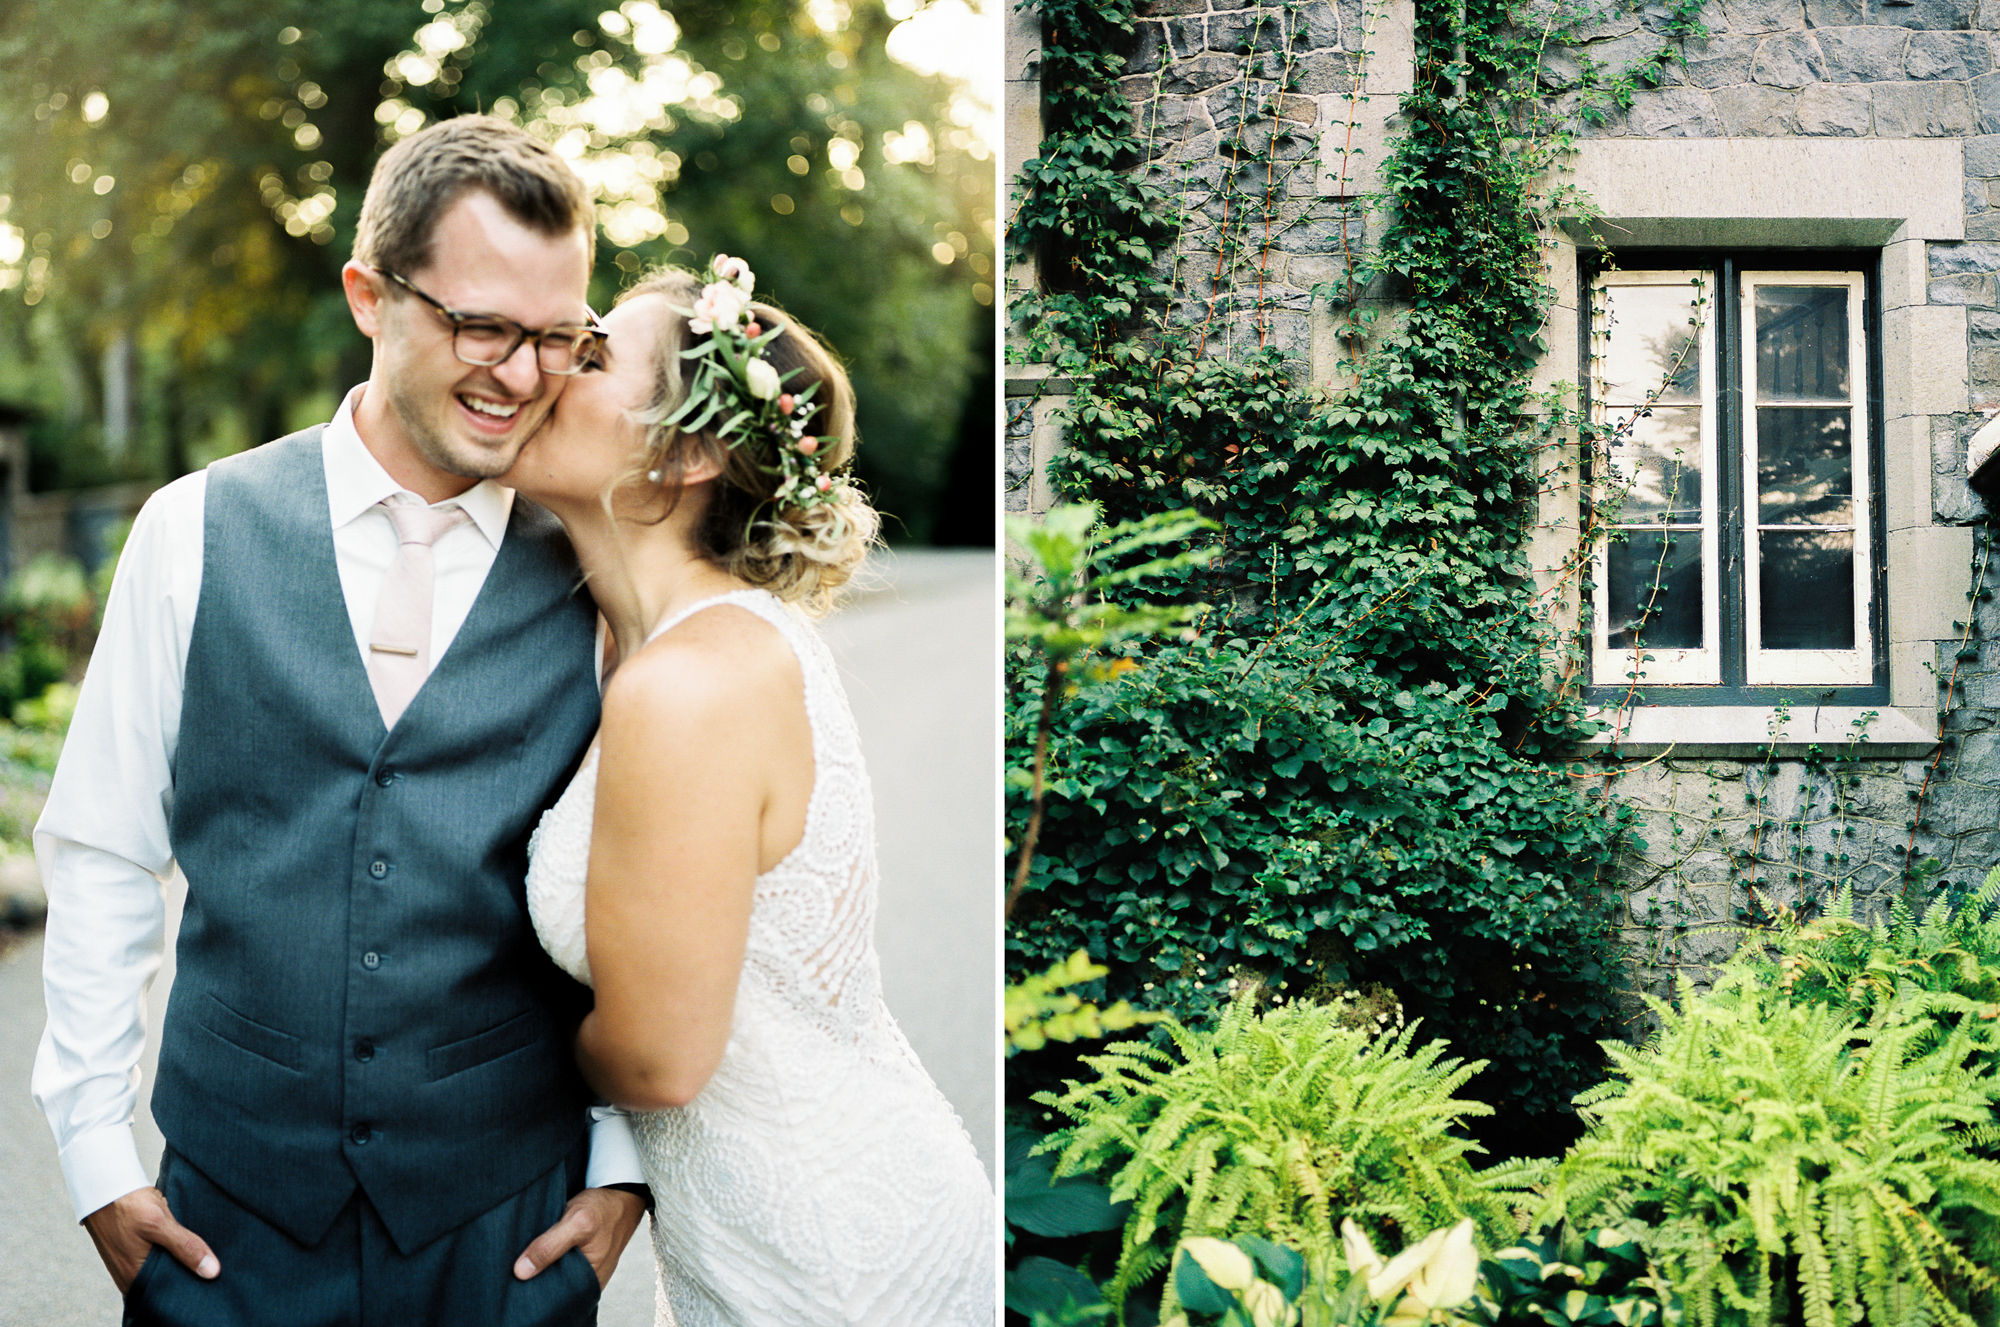 film-wedding-family-photographer-charlotte-carriage-house-rockwood-park-wilmington-delaware-56.jpg